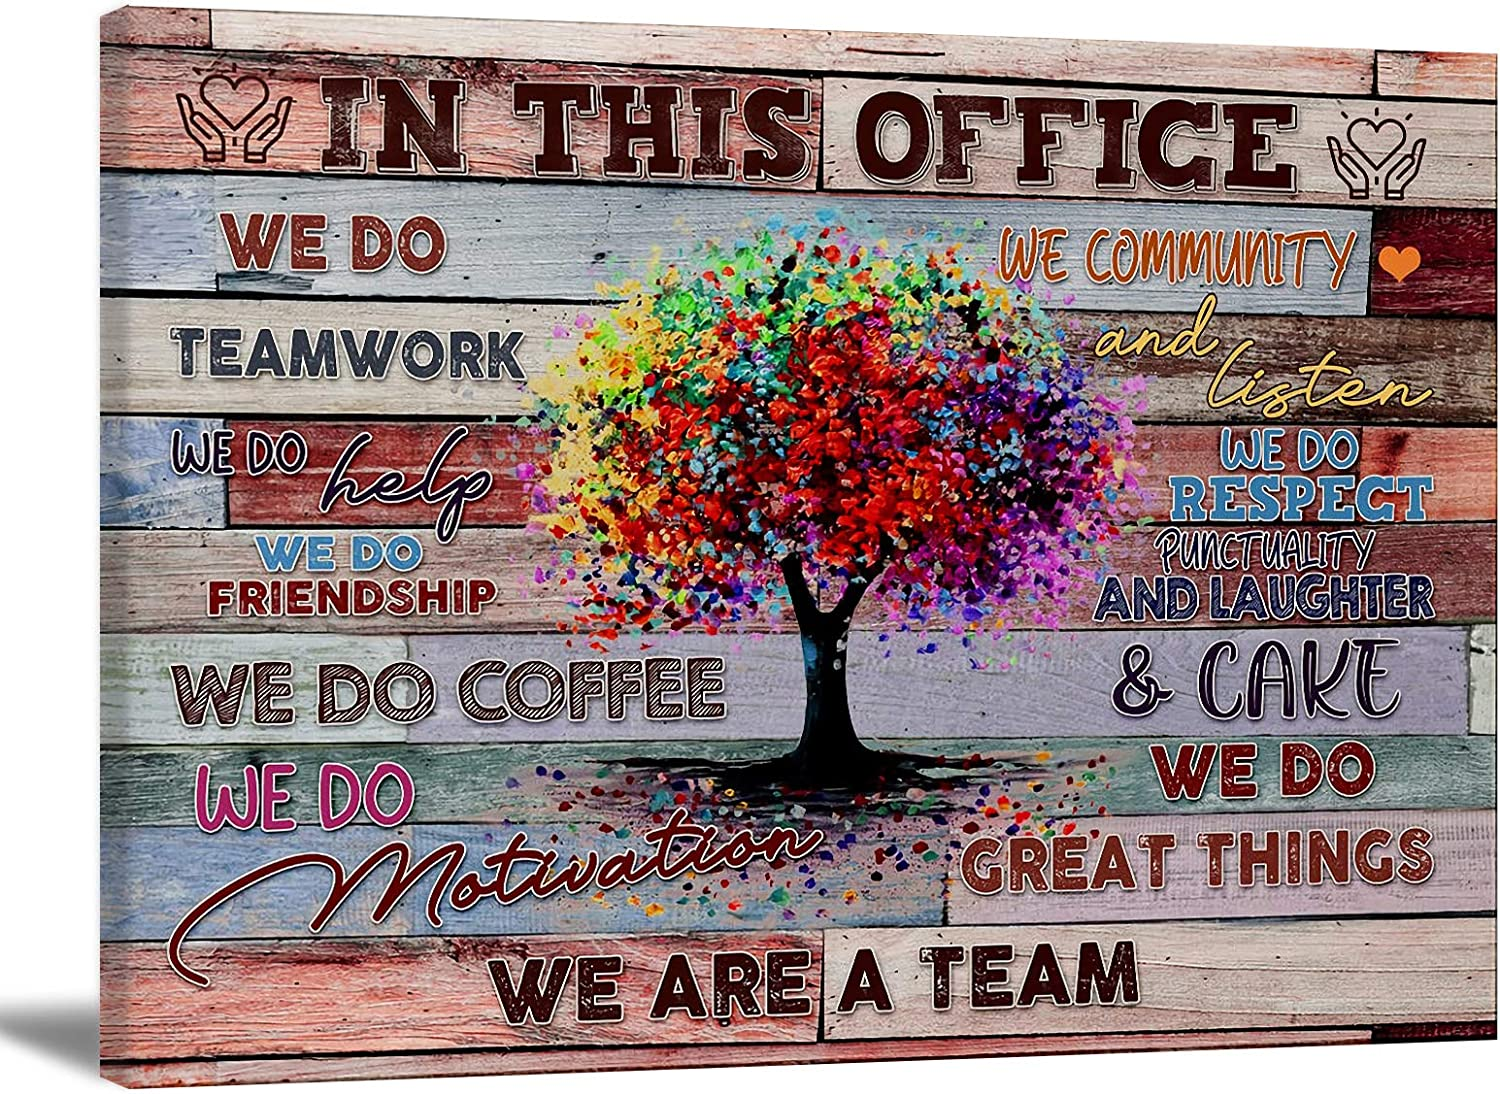 Inspirational Wall Art Motivational Poster Quotes Office Wall Decor for Girls Women Room Décor Canvas Wall Art for Office Canvas Print In This Office Teamwork Wall Art Office Gift 24x16in Frameless